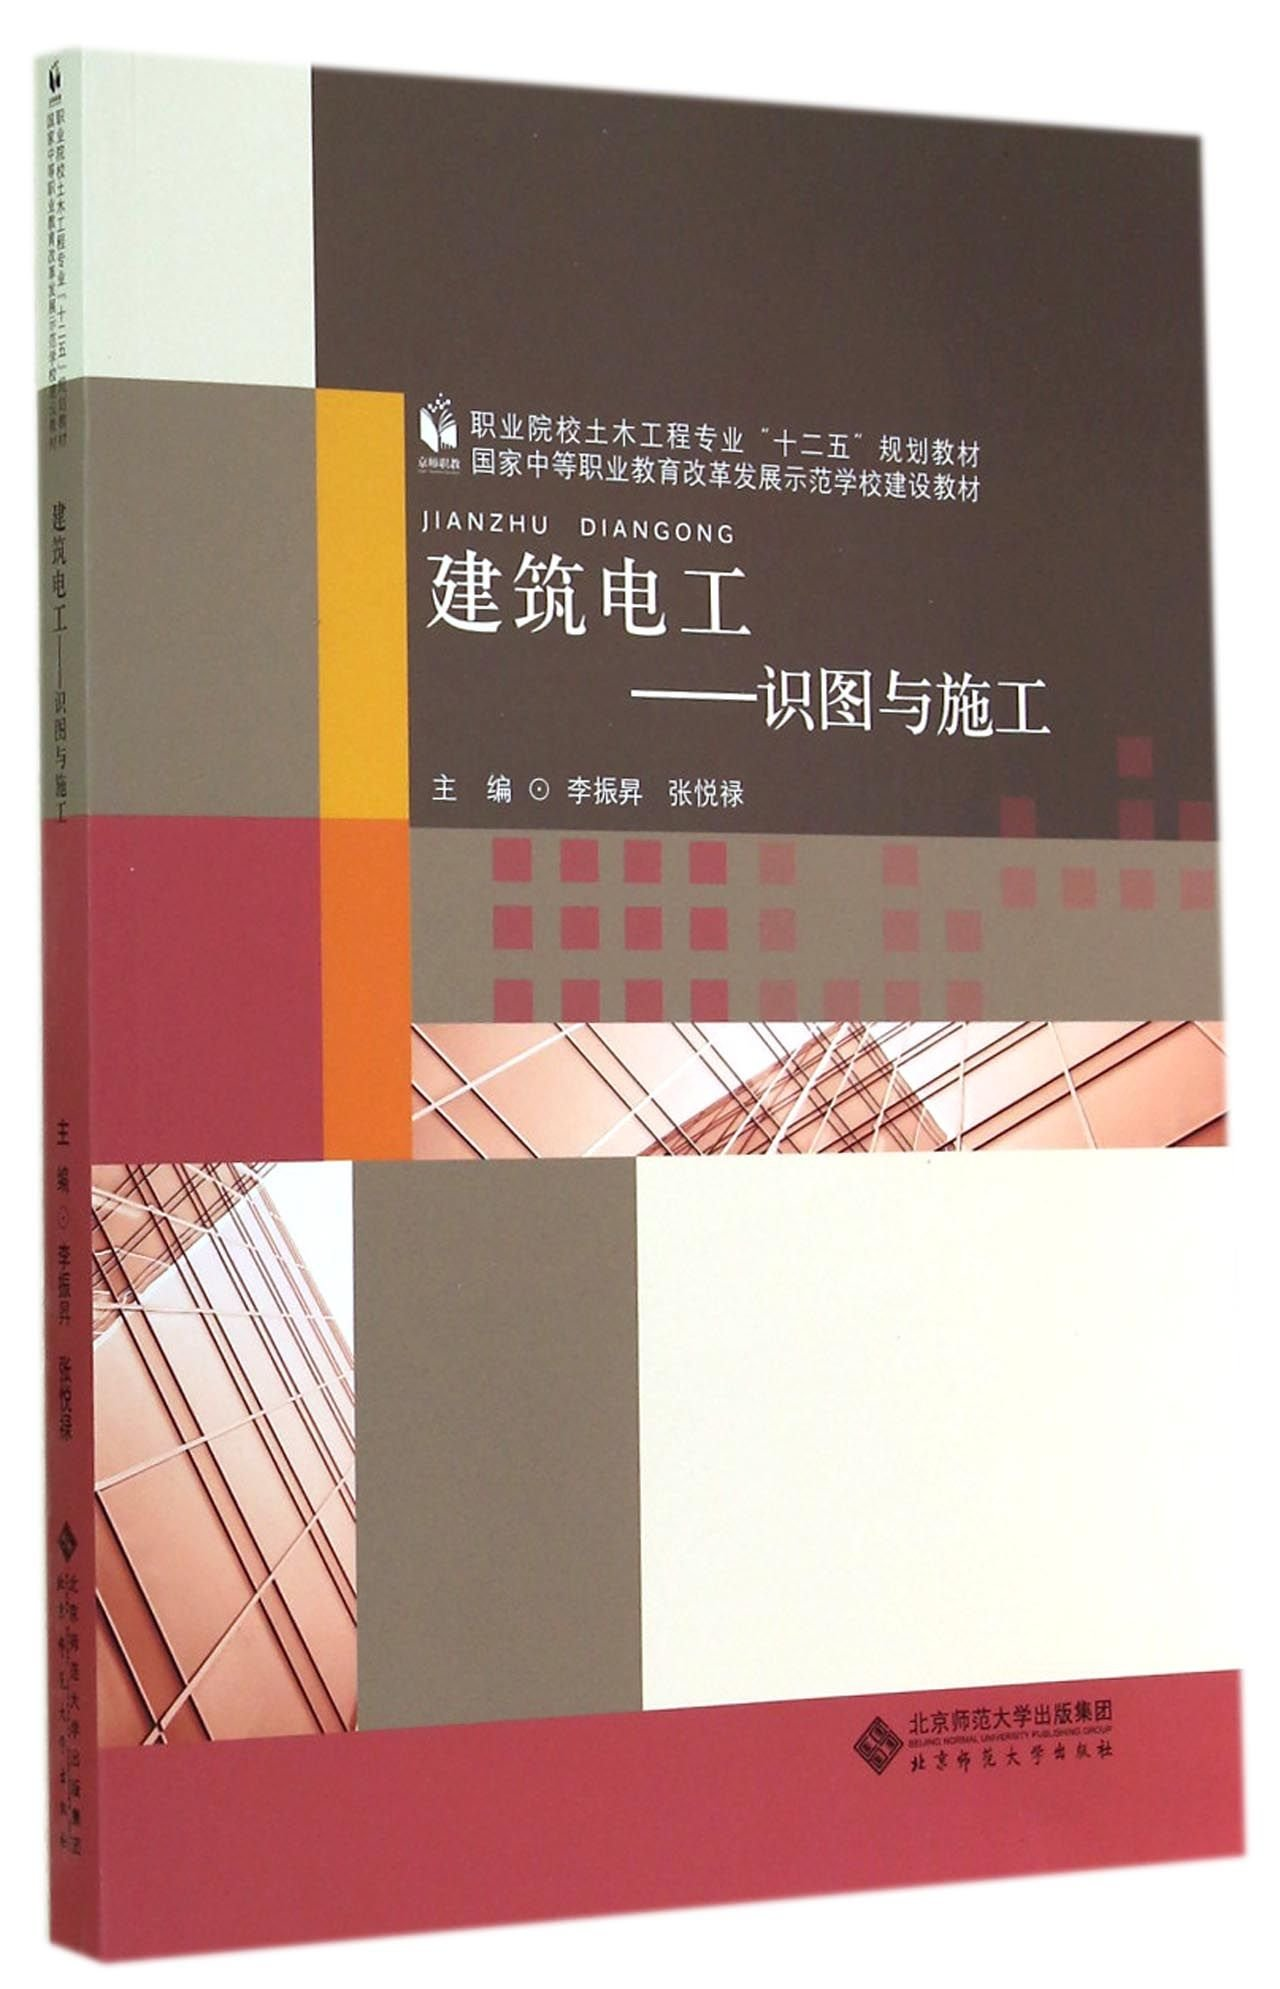 """Essay Paper Notebook for Chinese Writing Practice, 120 Pages, Blue Cover: 8""""x11"""", 20x20 Hanzi Grid Practice Paper Notebook, Per Page: 0.386"""" Inch ... Guide Lines, For Essay, Composition, Homework PDF ePub book"""